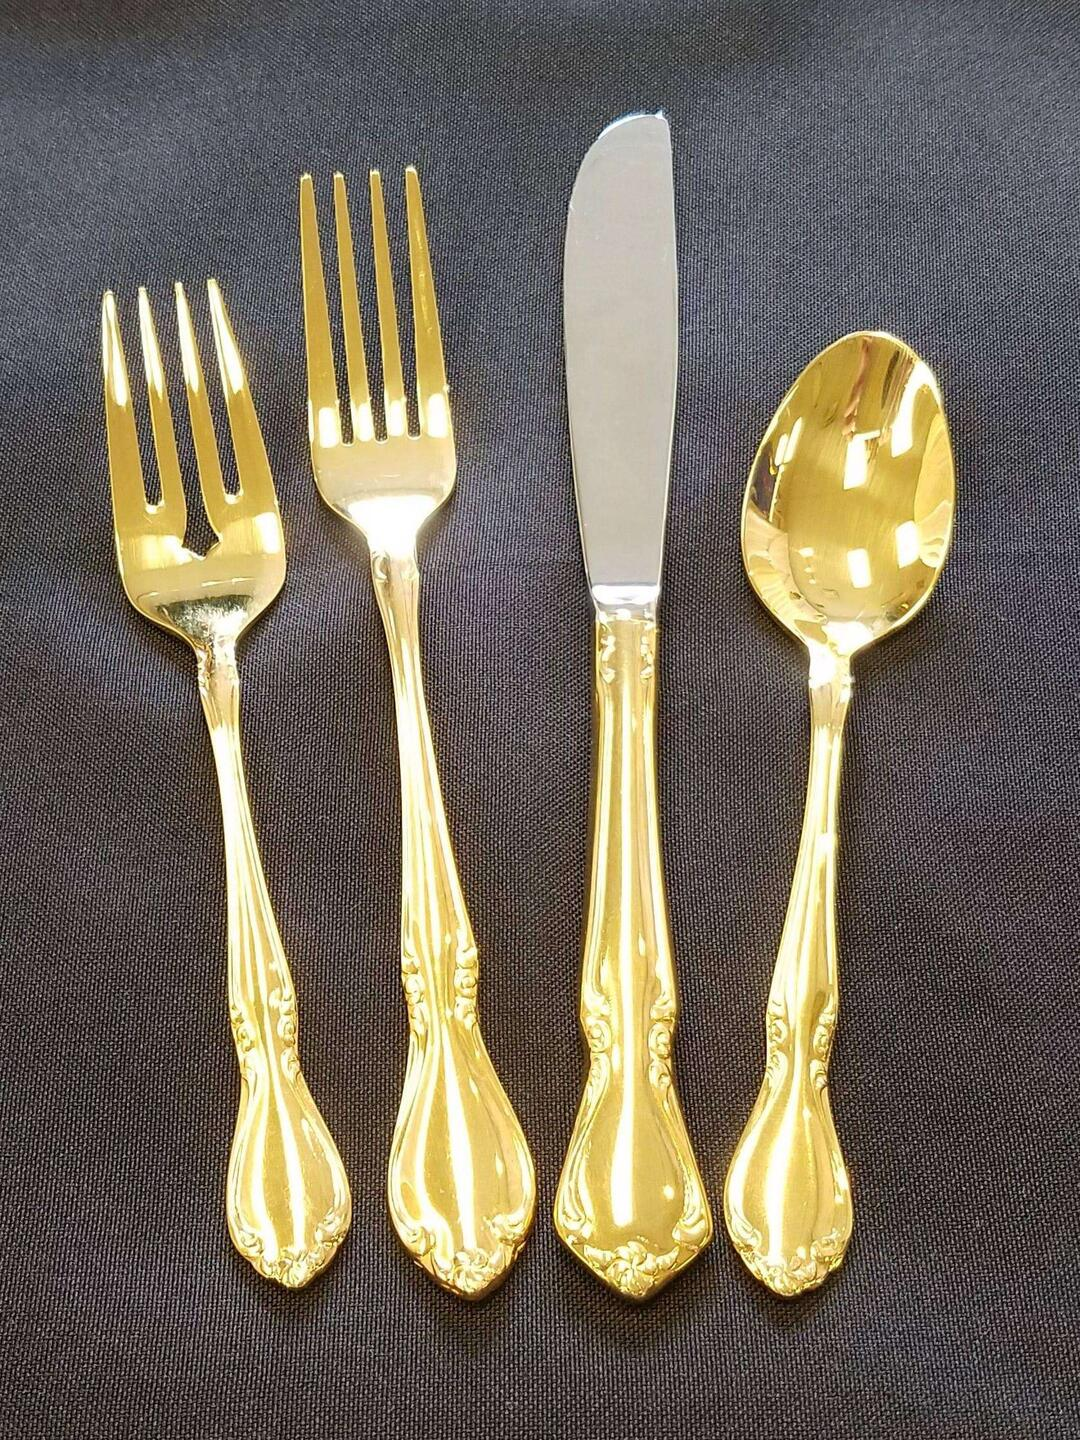 Flatware Gold Dinner Fork Sully S Tool Amp Party Rental